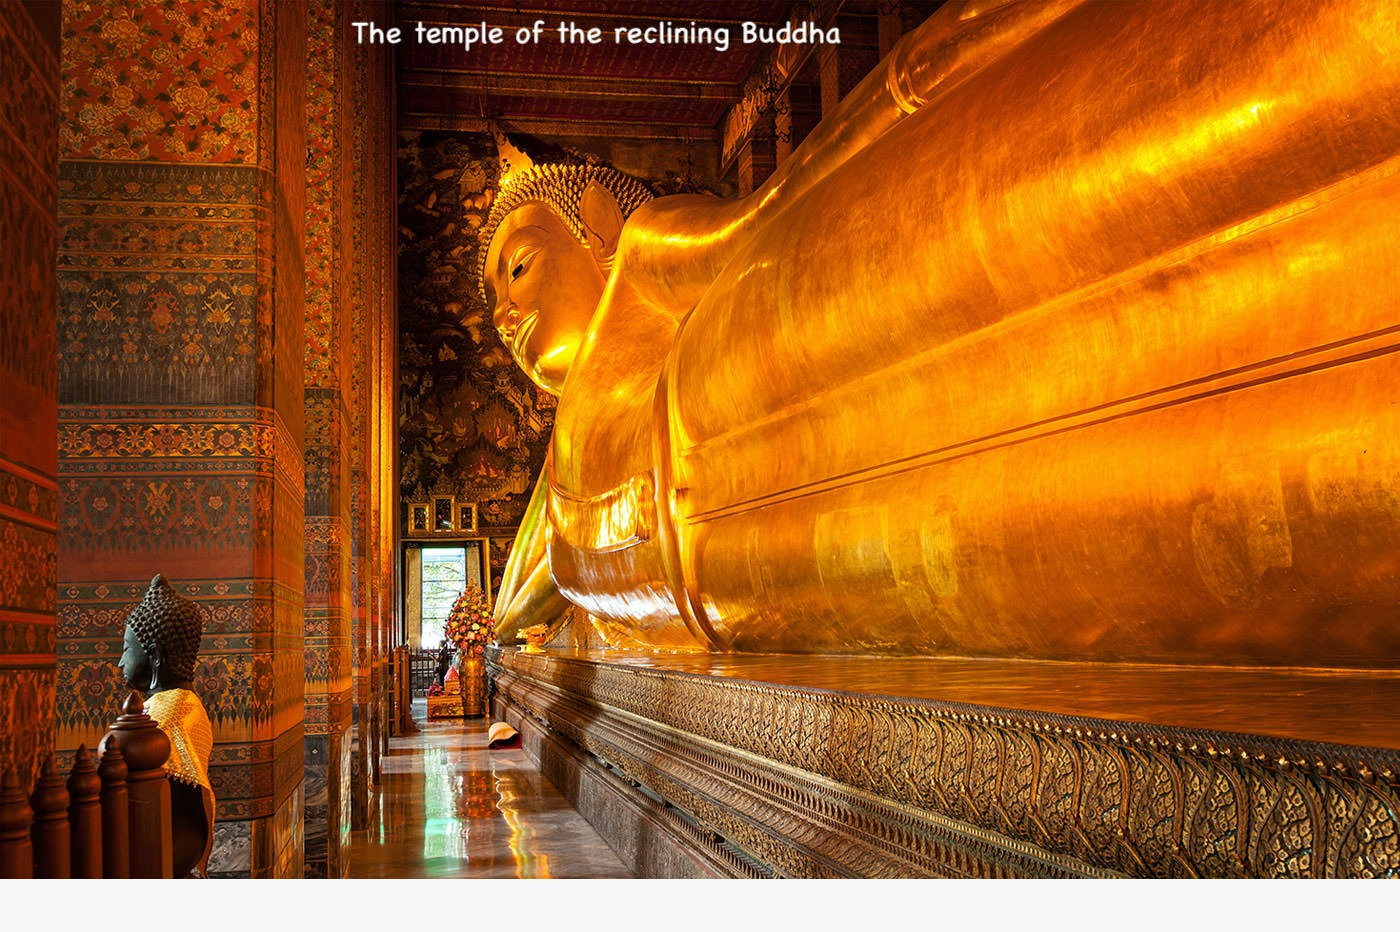 Full Day Bangkok Hindu Landmark City Tour